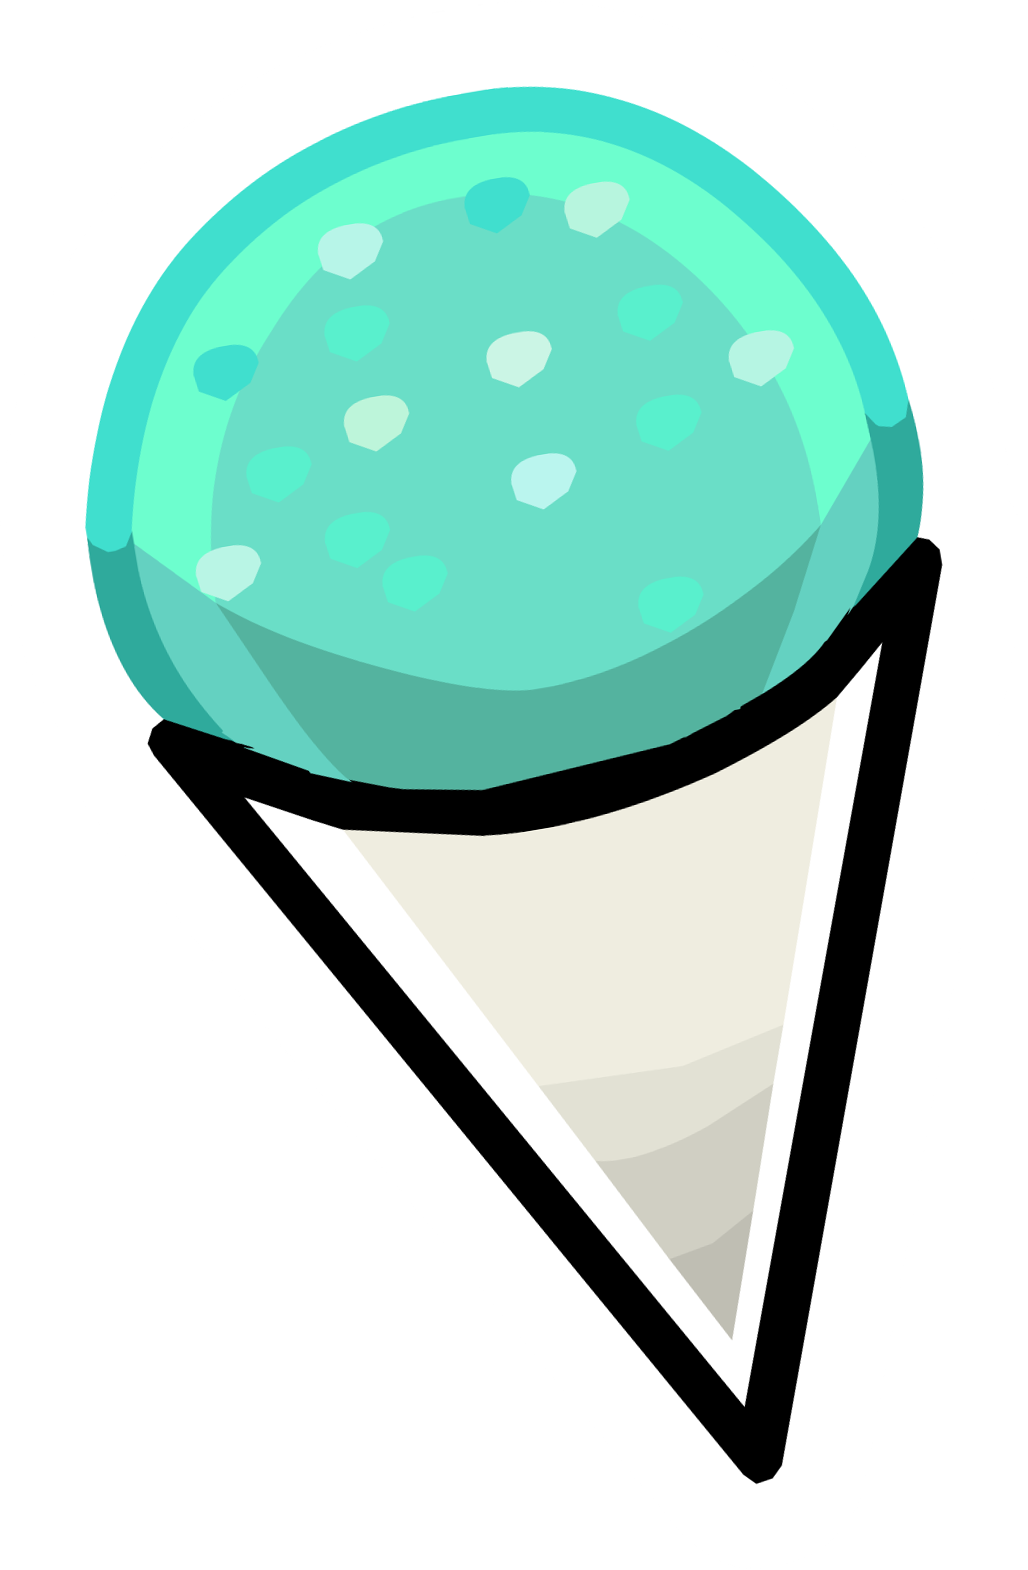 Penguin eating fish clipart graphic black and white library Snow Cone | Club Penguin Wiki | FANDOM powered by Wikia graphic black and white library